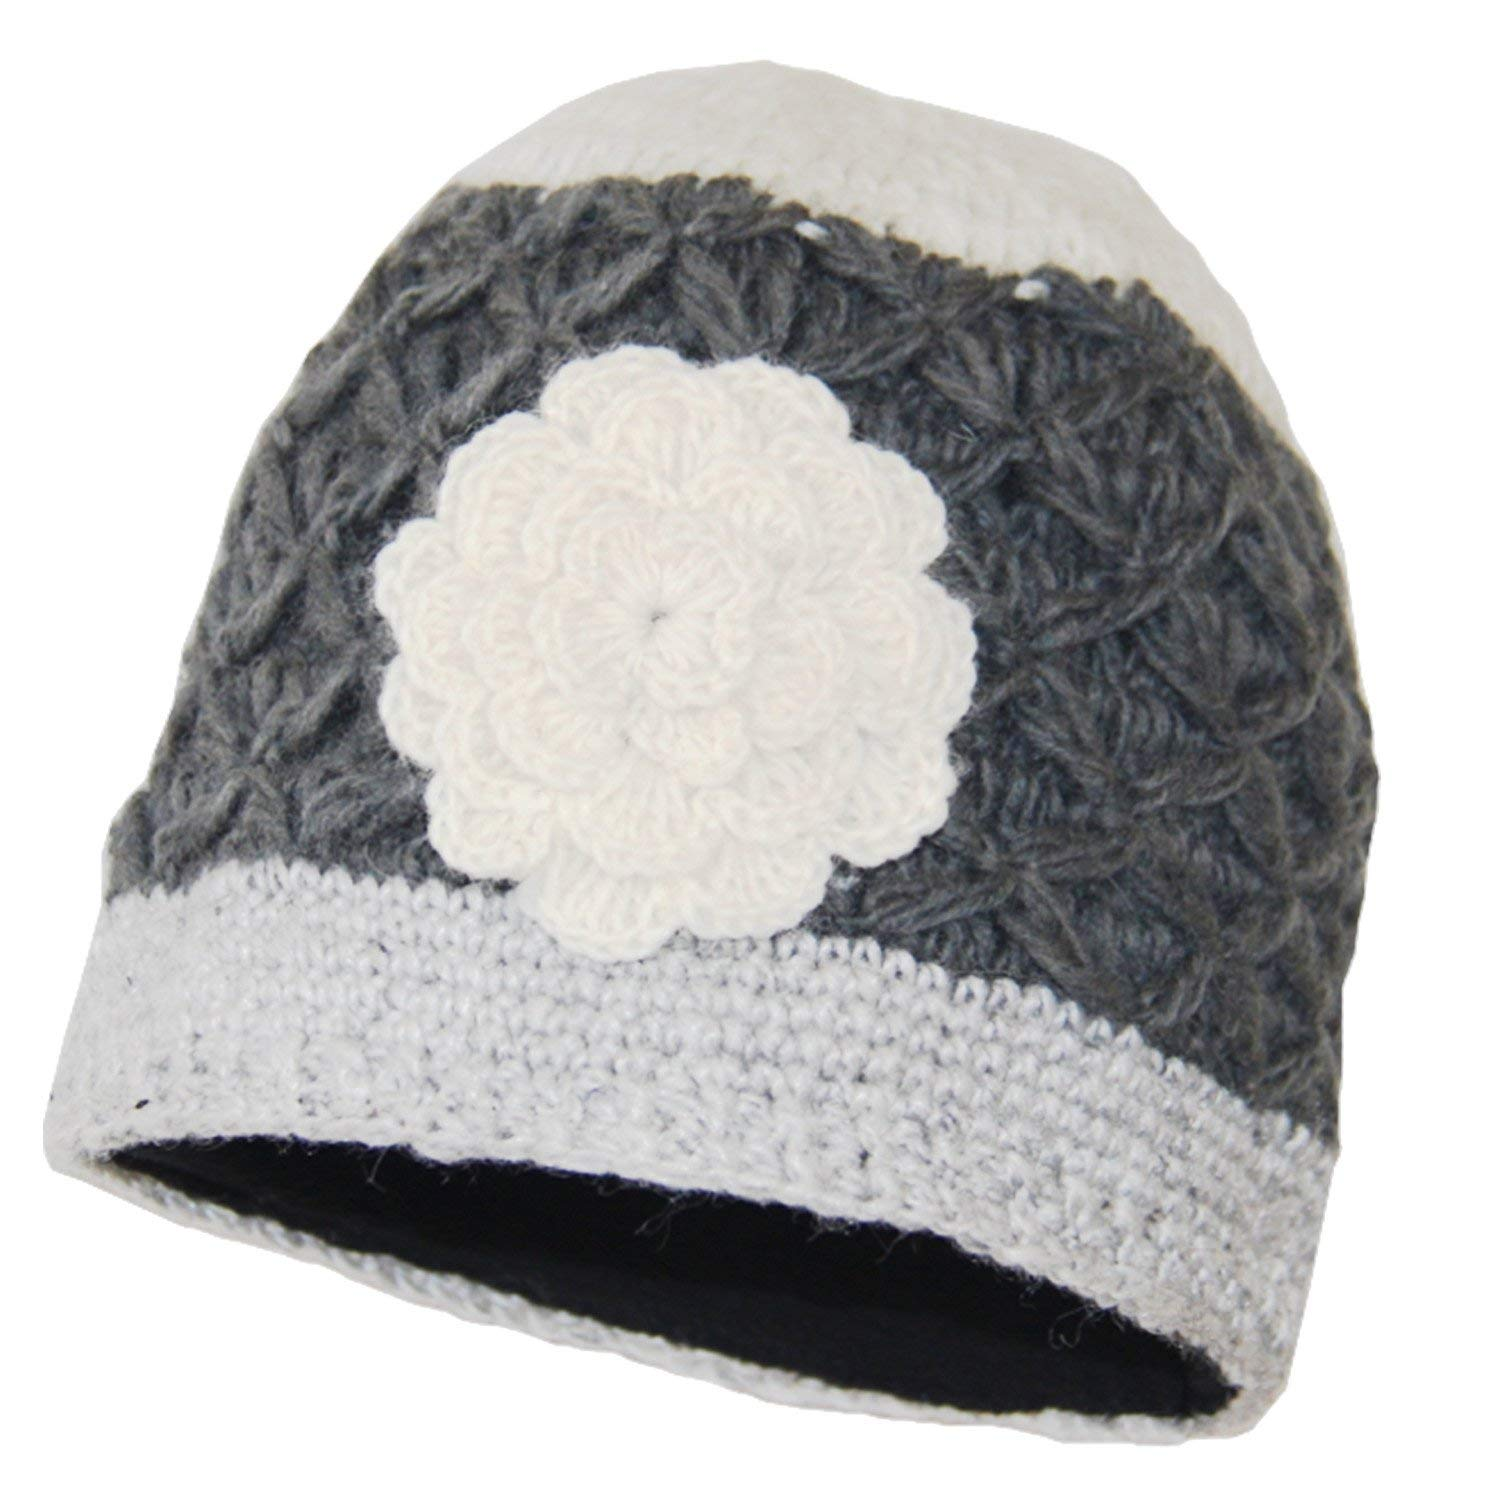 74c9c38b085 Get Quotations · SIJJL Gray-Ivory Crochet Flower Beanie